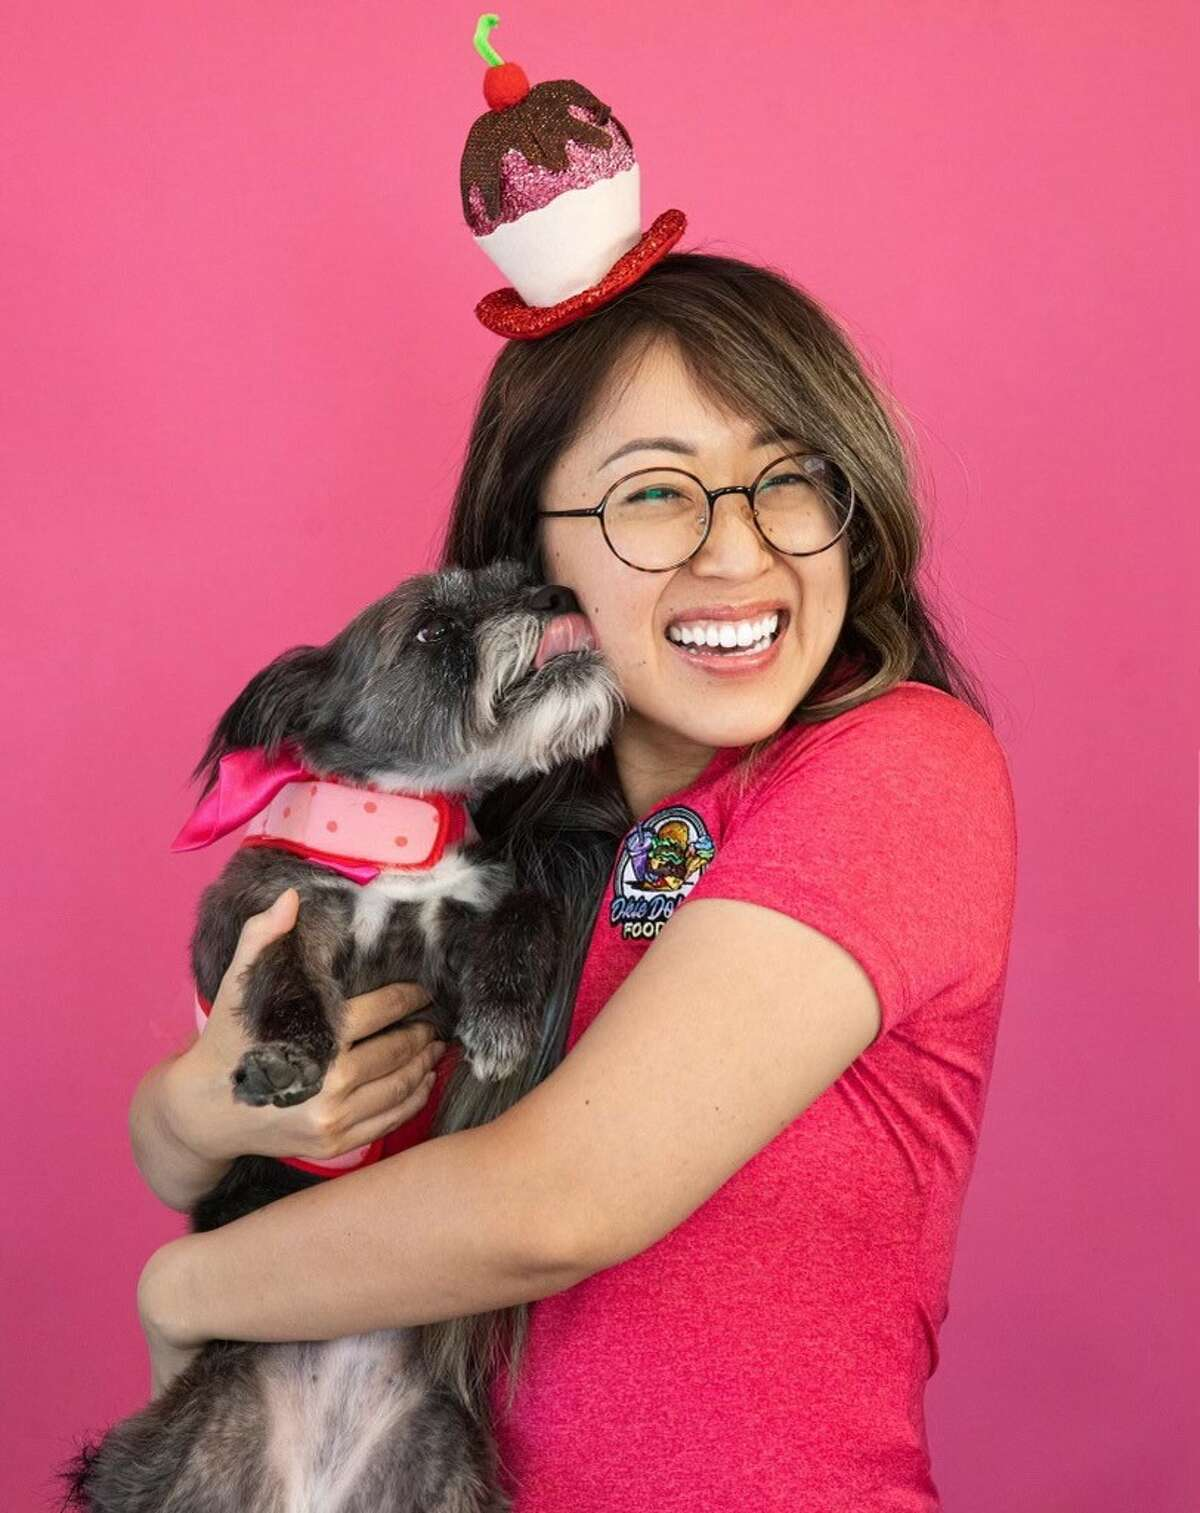 In a few weeks, she's become seen as a sort of savior for San Antonio businesses. Bui started with a simple call-out, asking for local nominations of people who needed her spotlight. She started with a list, lending a hand to Comfort Cafe first.